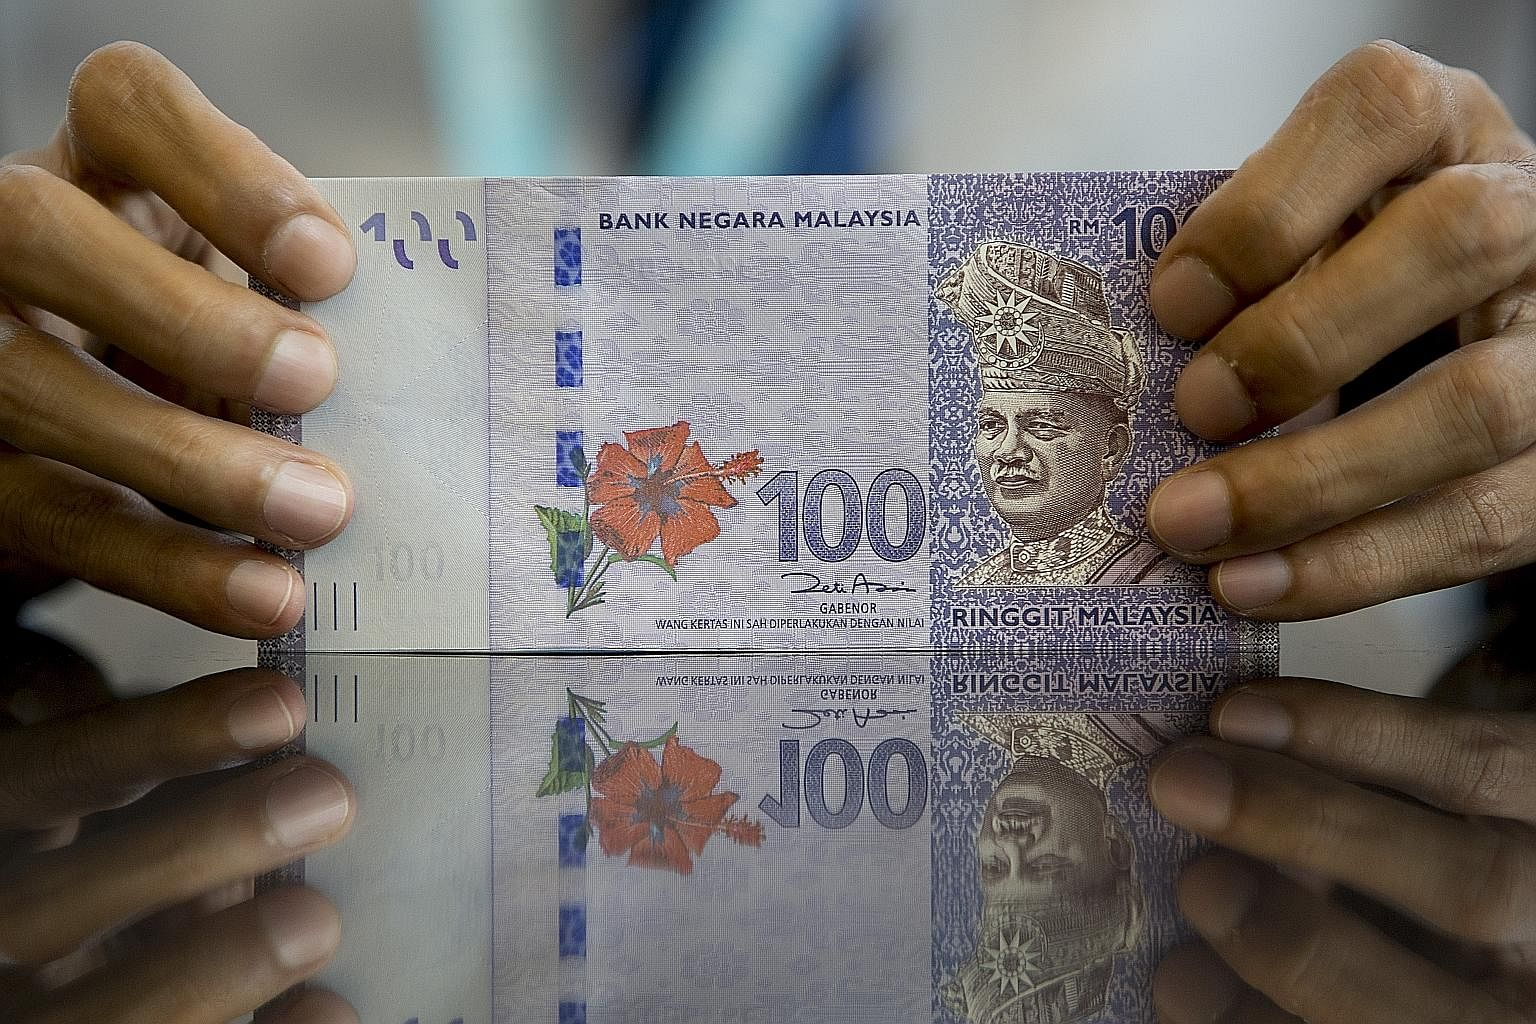 The ringgit has suffered an 18 per cent plunge over the past 12 months, with the currency at its lowest level in 17 years.